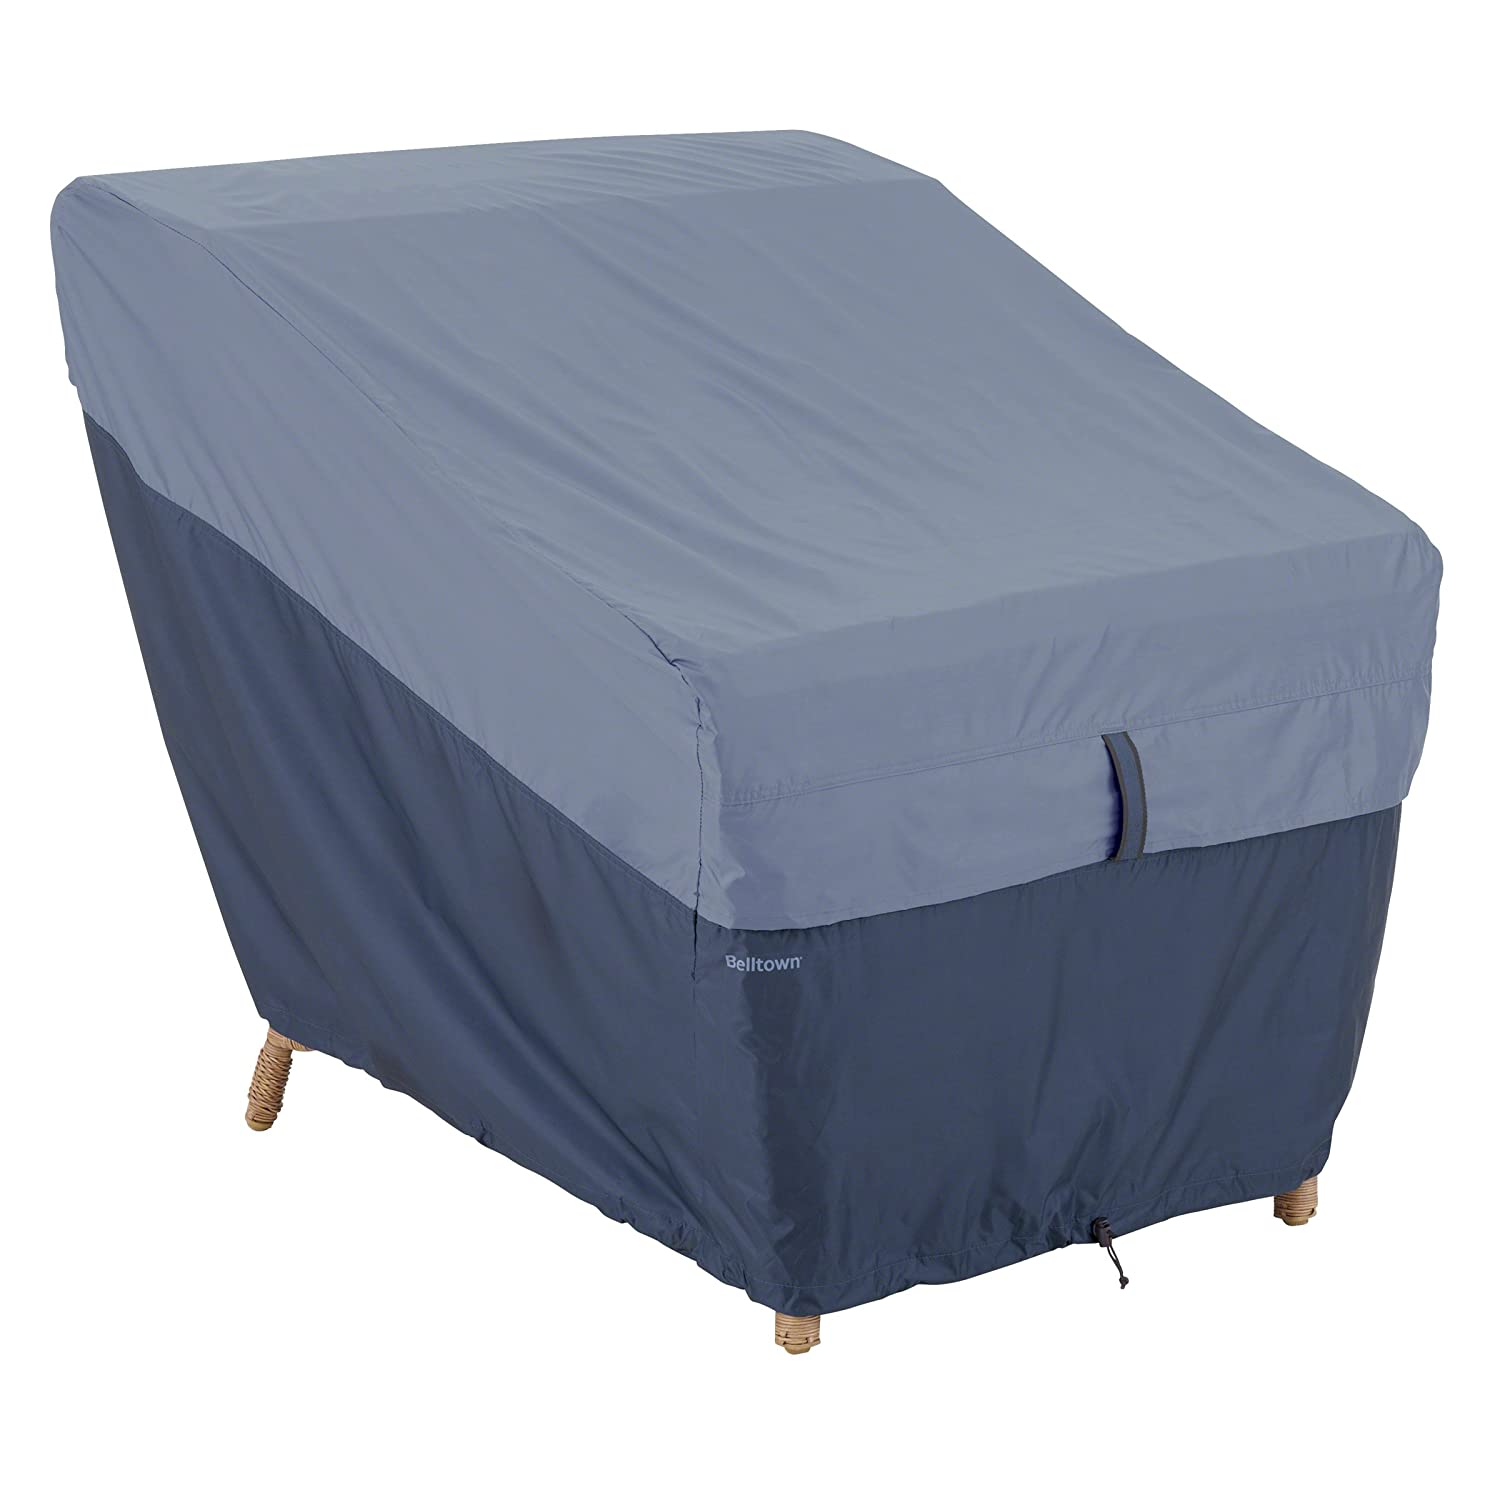 Classic Accessories Belltown Outdoor Patio Lounge Chair Cover-Weather and Water Resistant Patio Set Cover, Grey (55-270-011001-00)